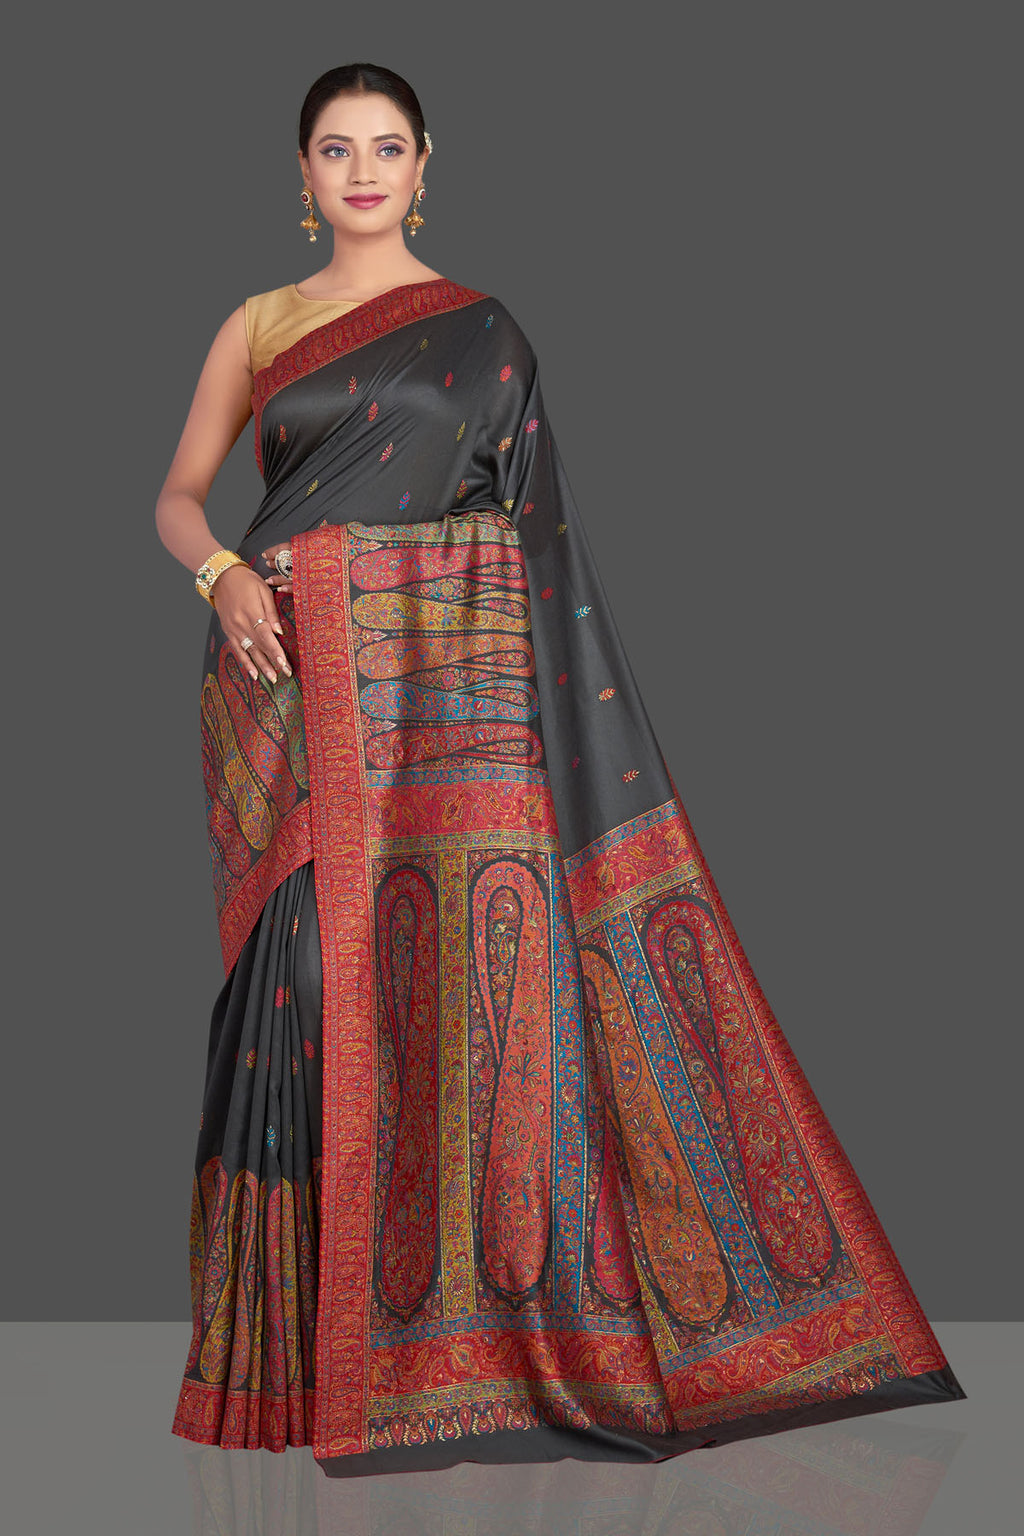 Shop stunning black tussar silk sari online in USA with multicolor Kani embroidery. Make your presence felt on special occasions in beautiful embroidered sarees, handwoven sarees, pure silk saris, tussar sarees from Pure Elegance Indian saree store in USA.-full view